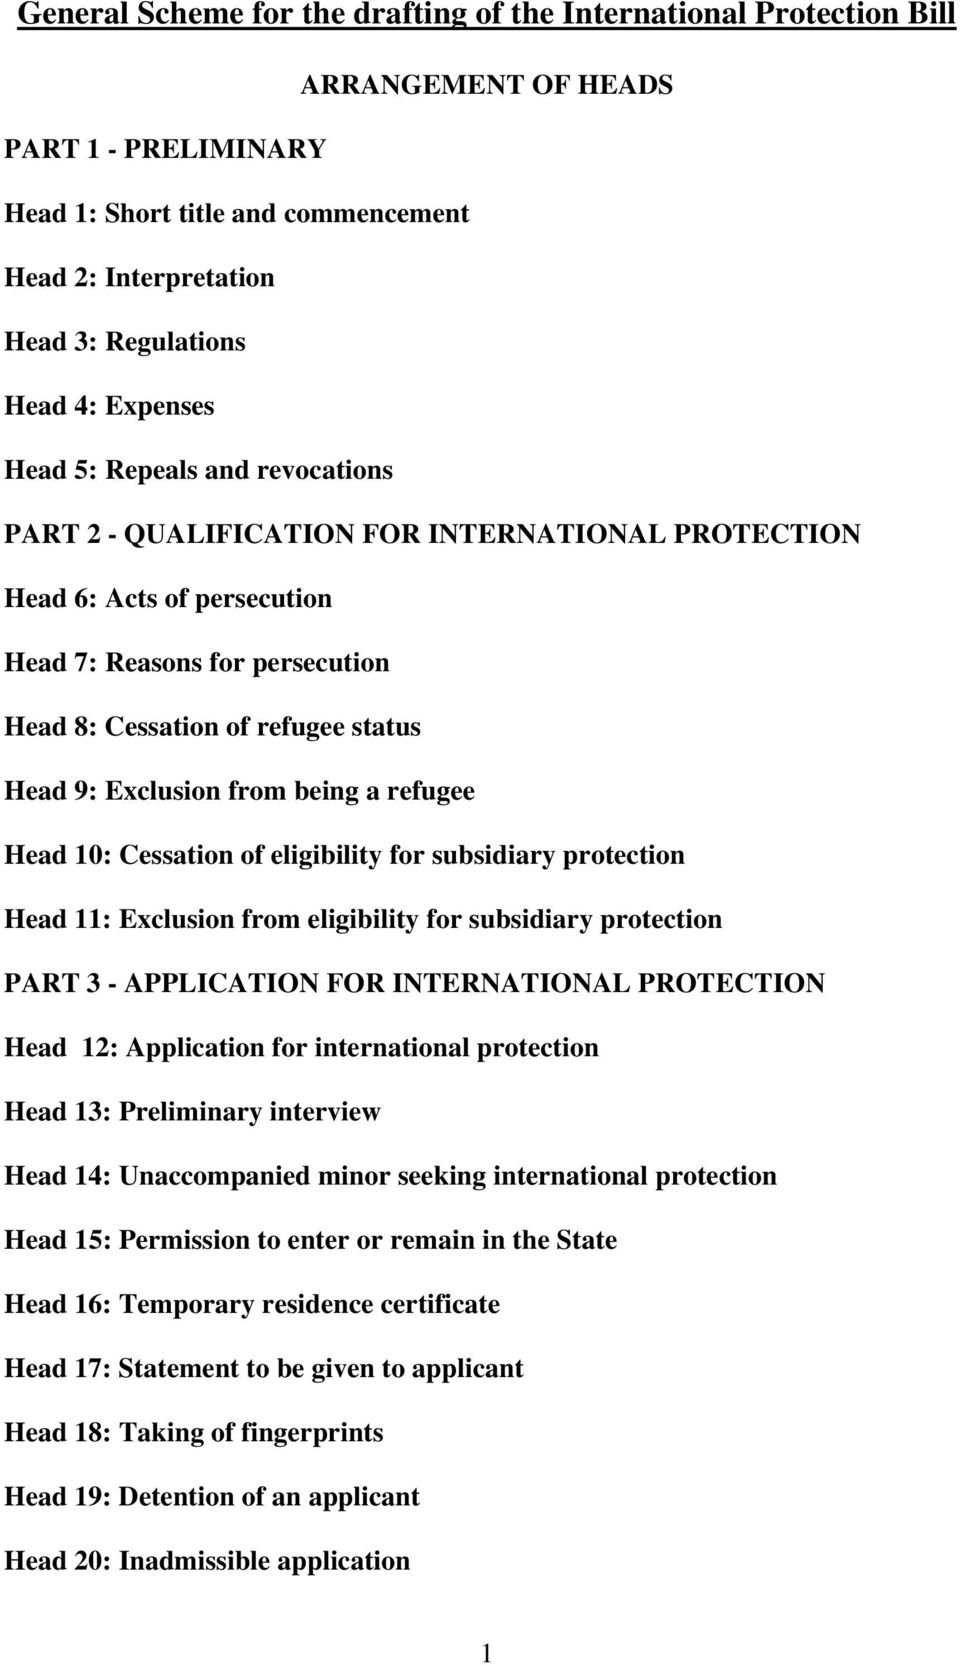 Exclusion from being a refugee Head 10: Cessation of eligibility for subsidiary protection Head 11: Exclusion from eligibility for subsidiary protection PART 3 - APPLICATION FOR INTERNATIONAL